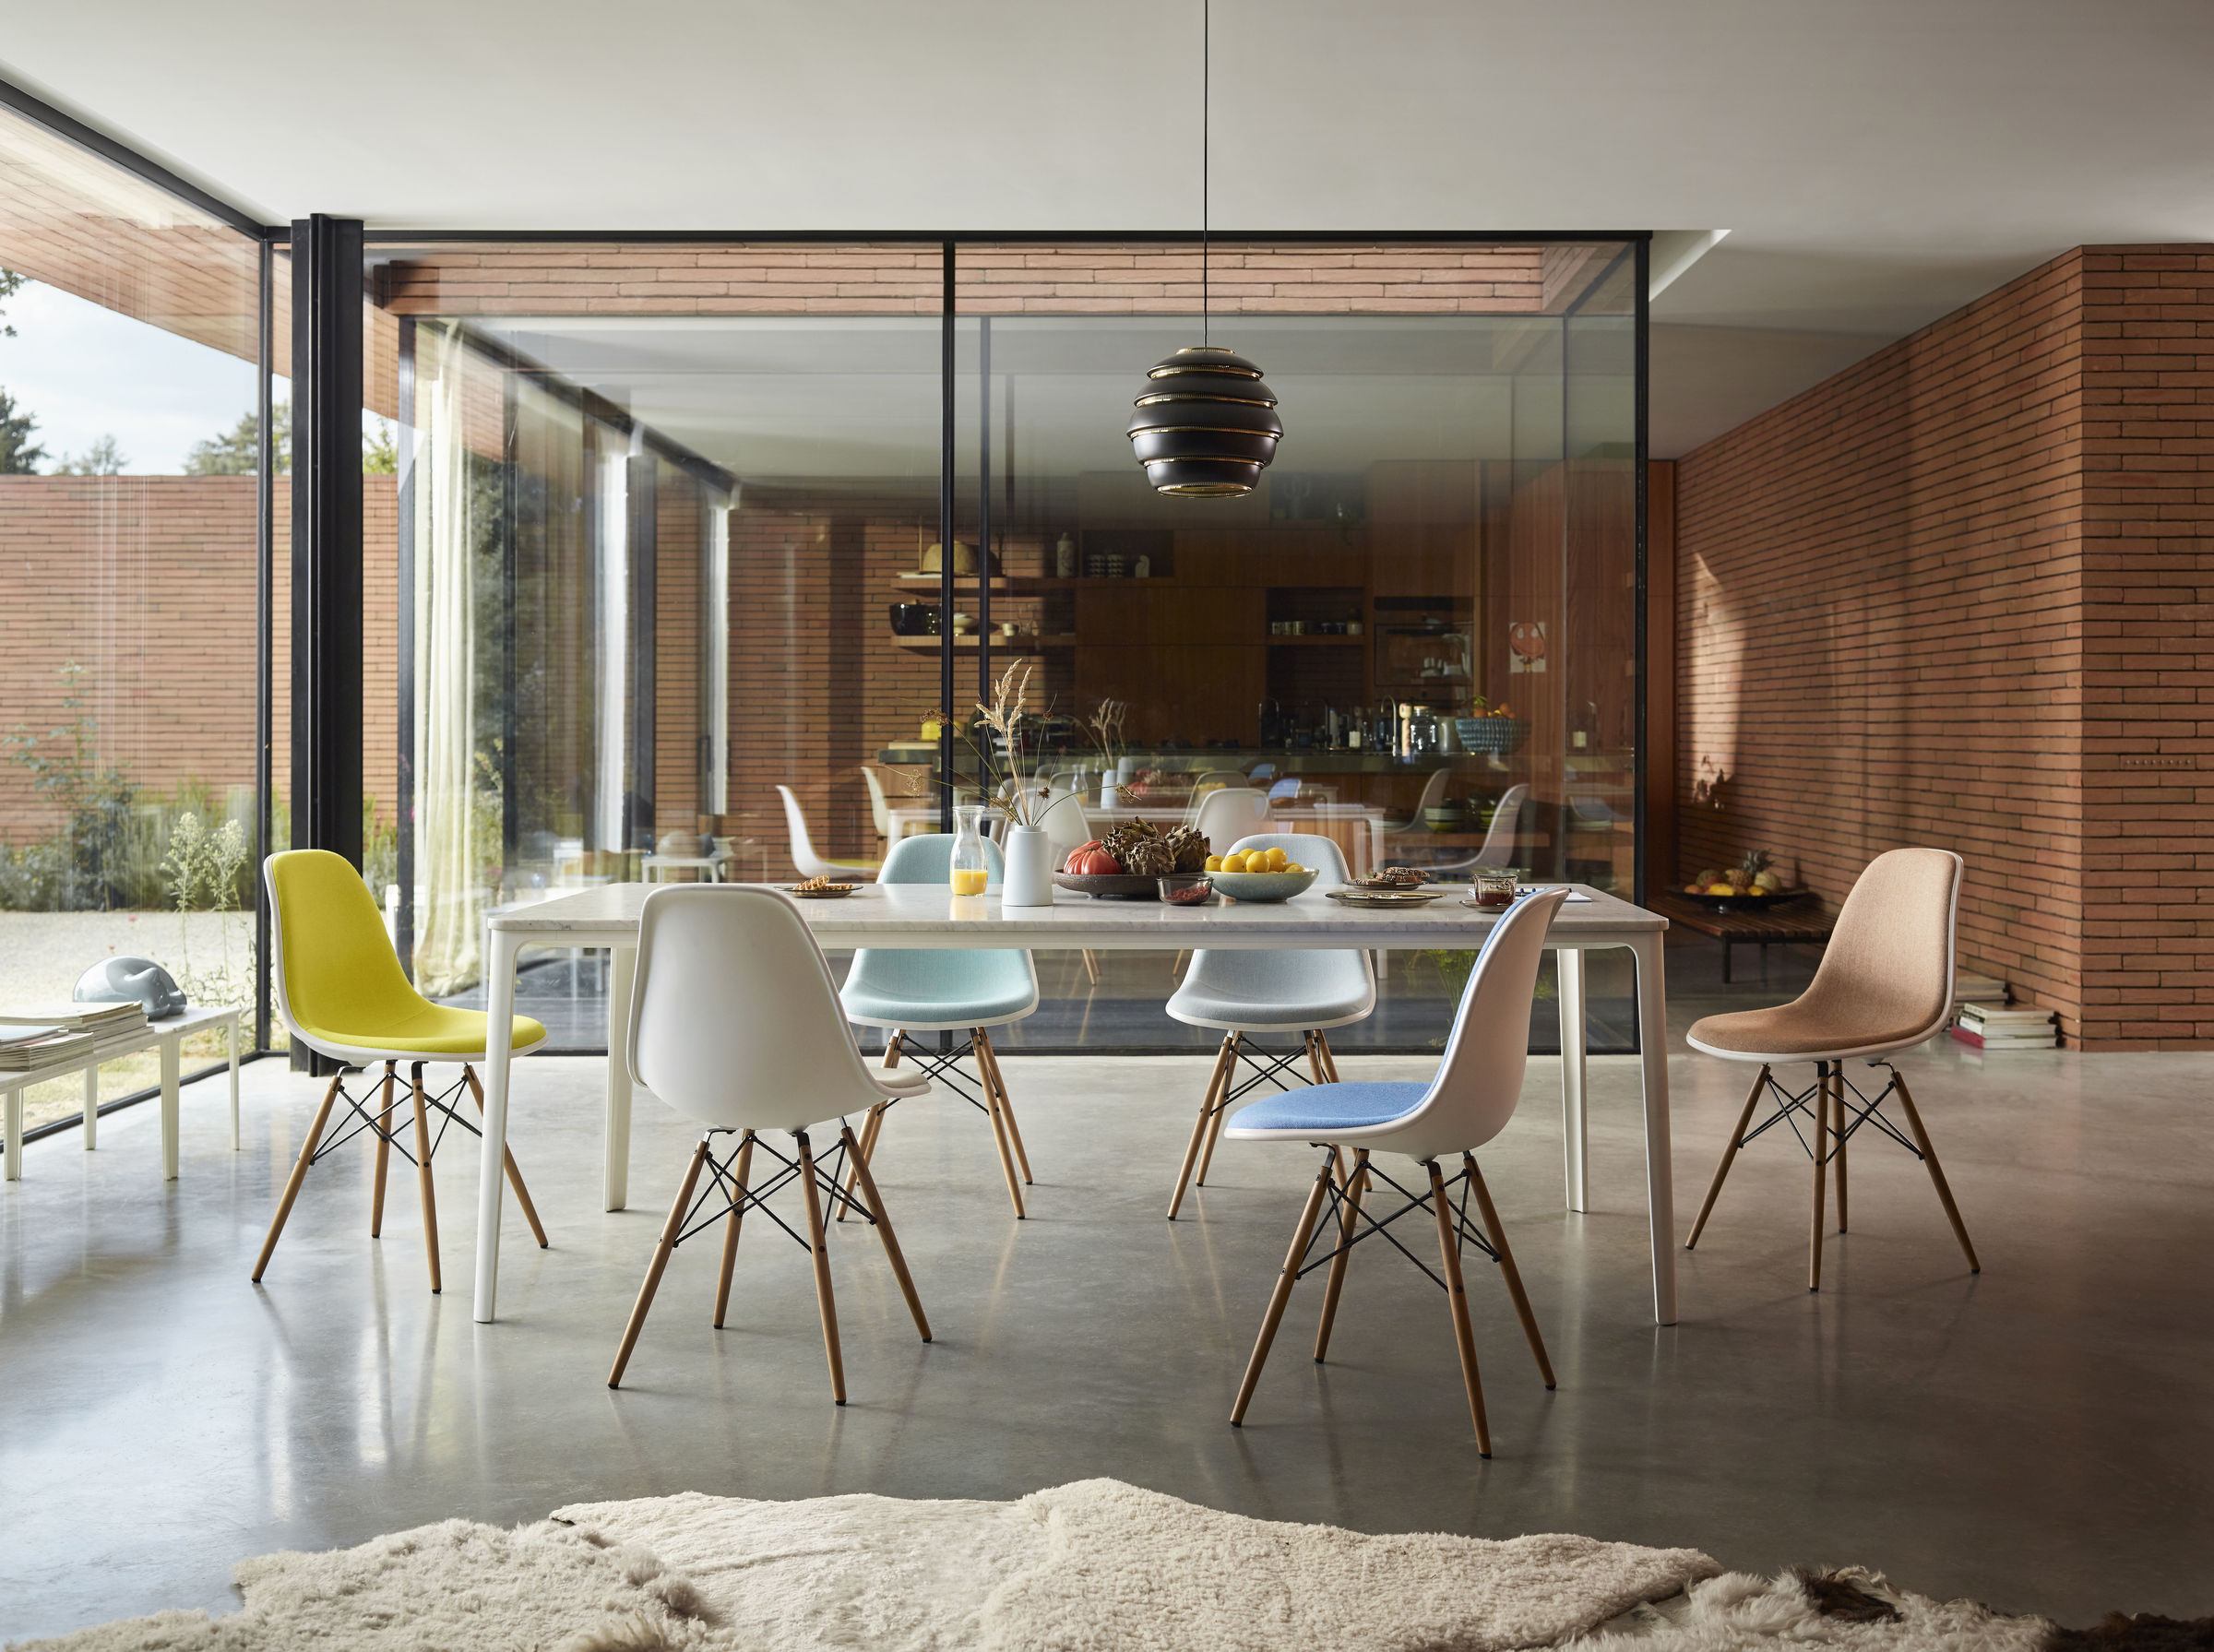 Eames Chair, 1950, Charles and Ray Eames